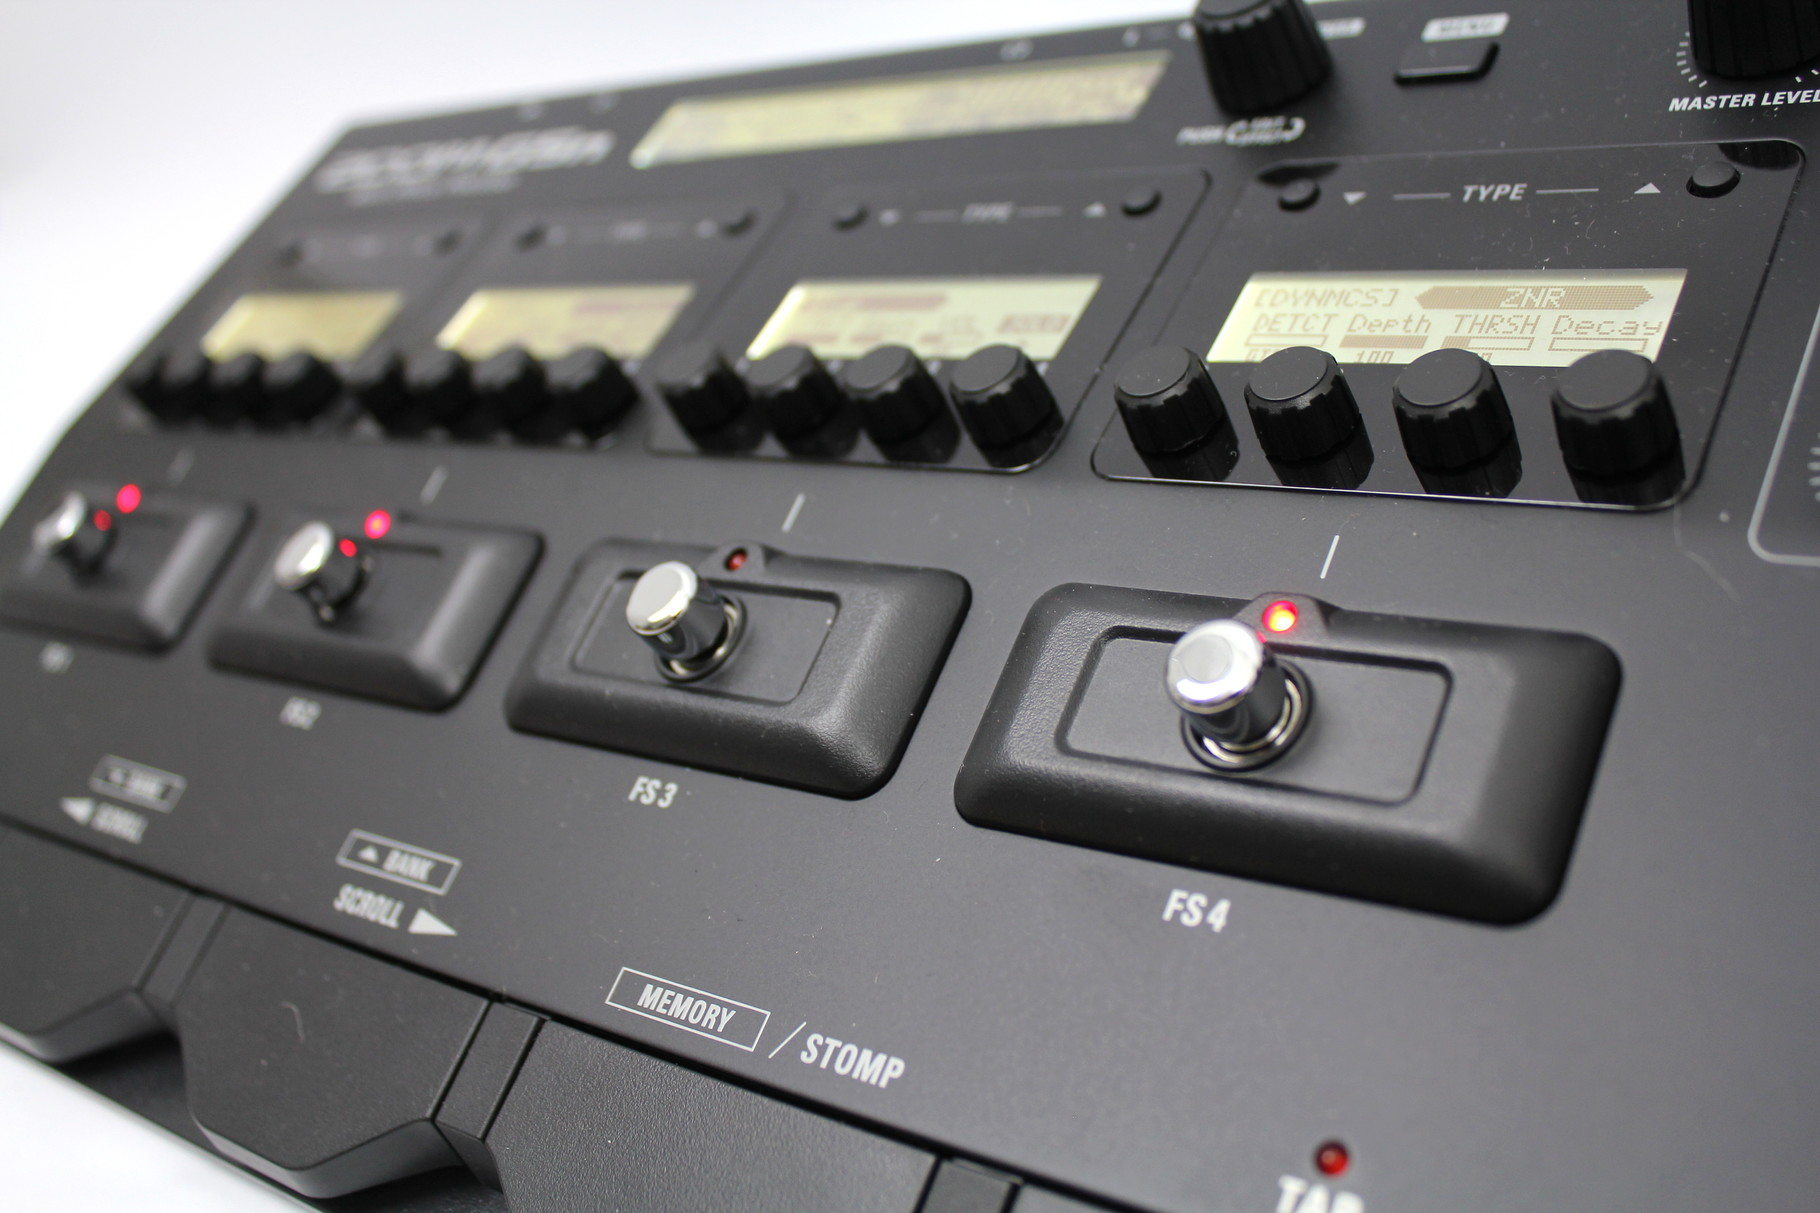 Zoom Multi-Effects Processor G5n